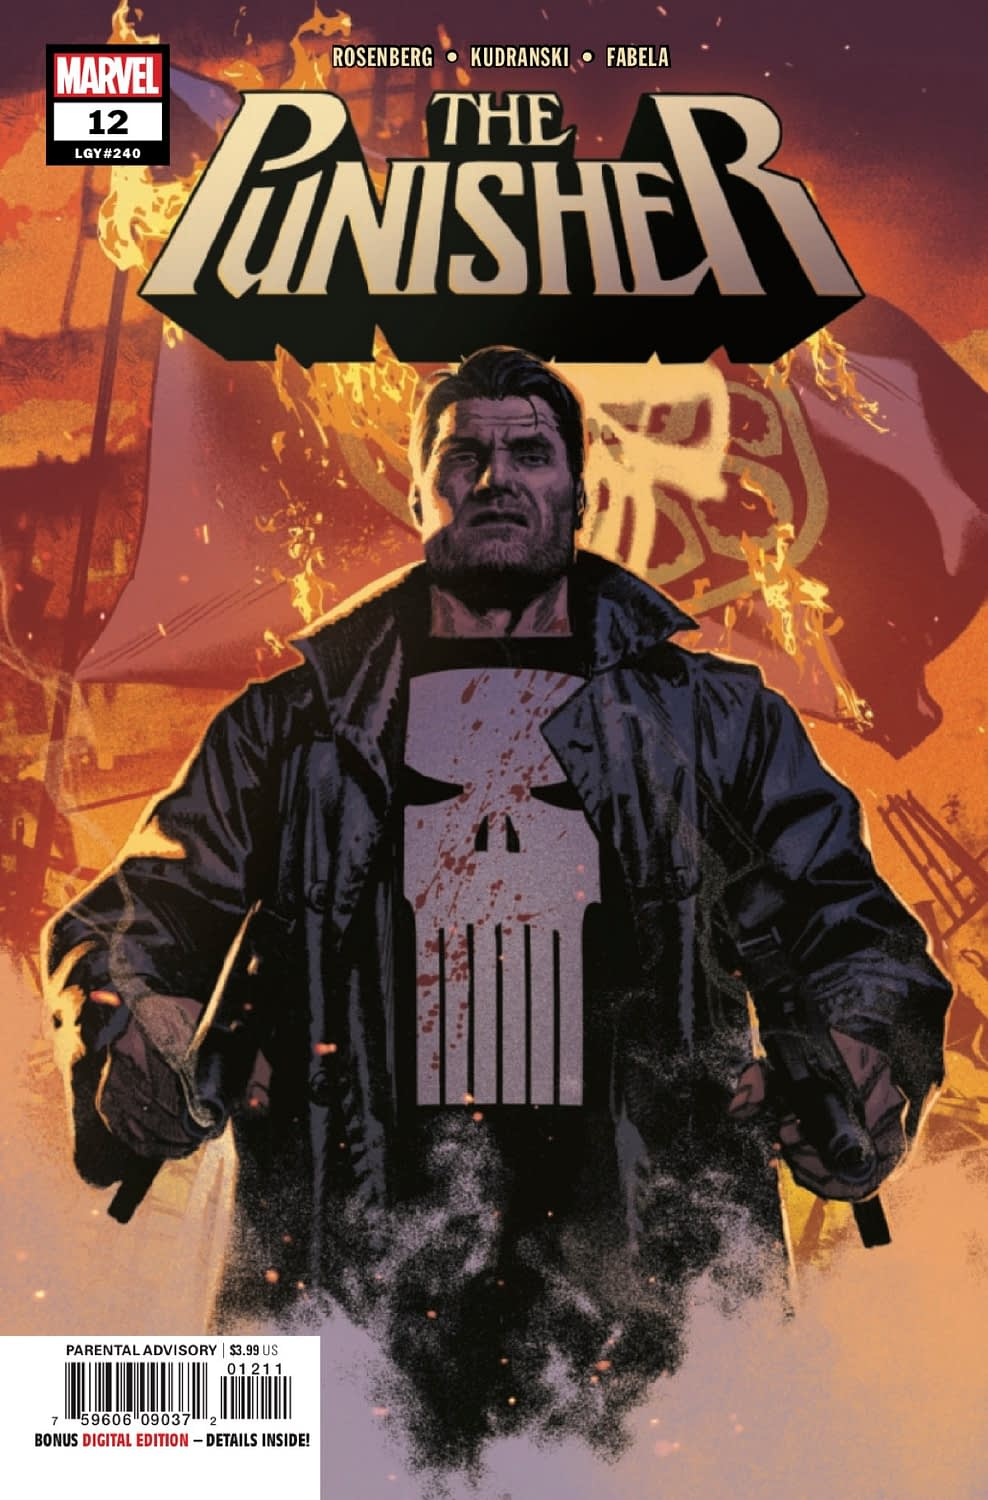 Meet the Men Who Killed the Punisher? Punisher #12 Preview